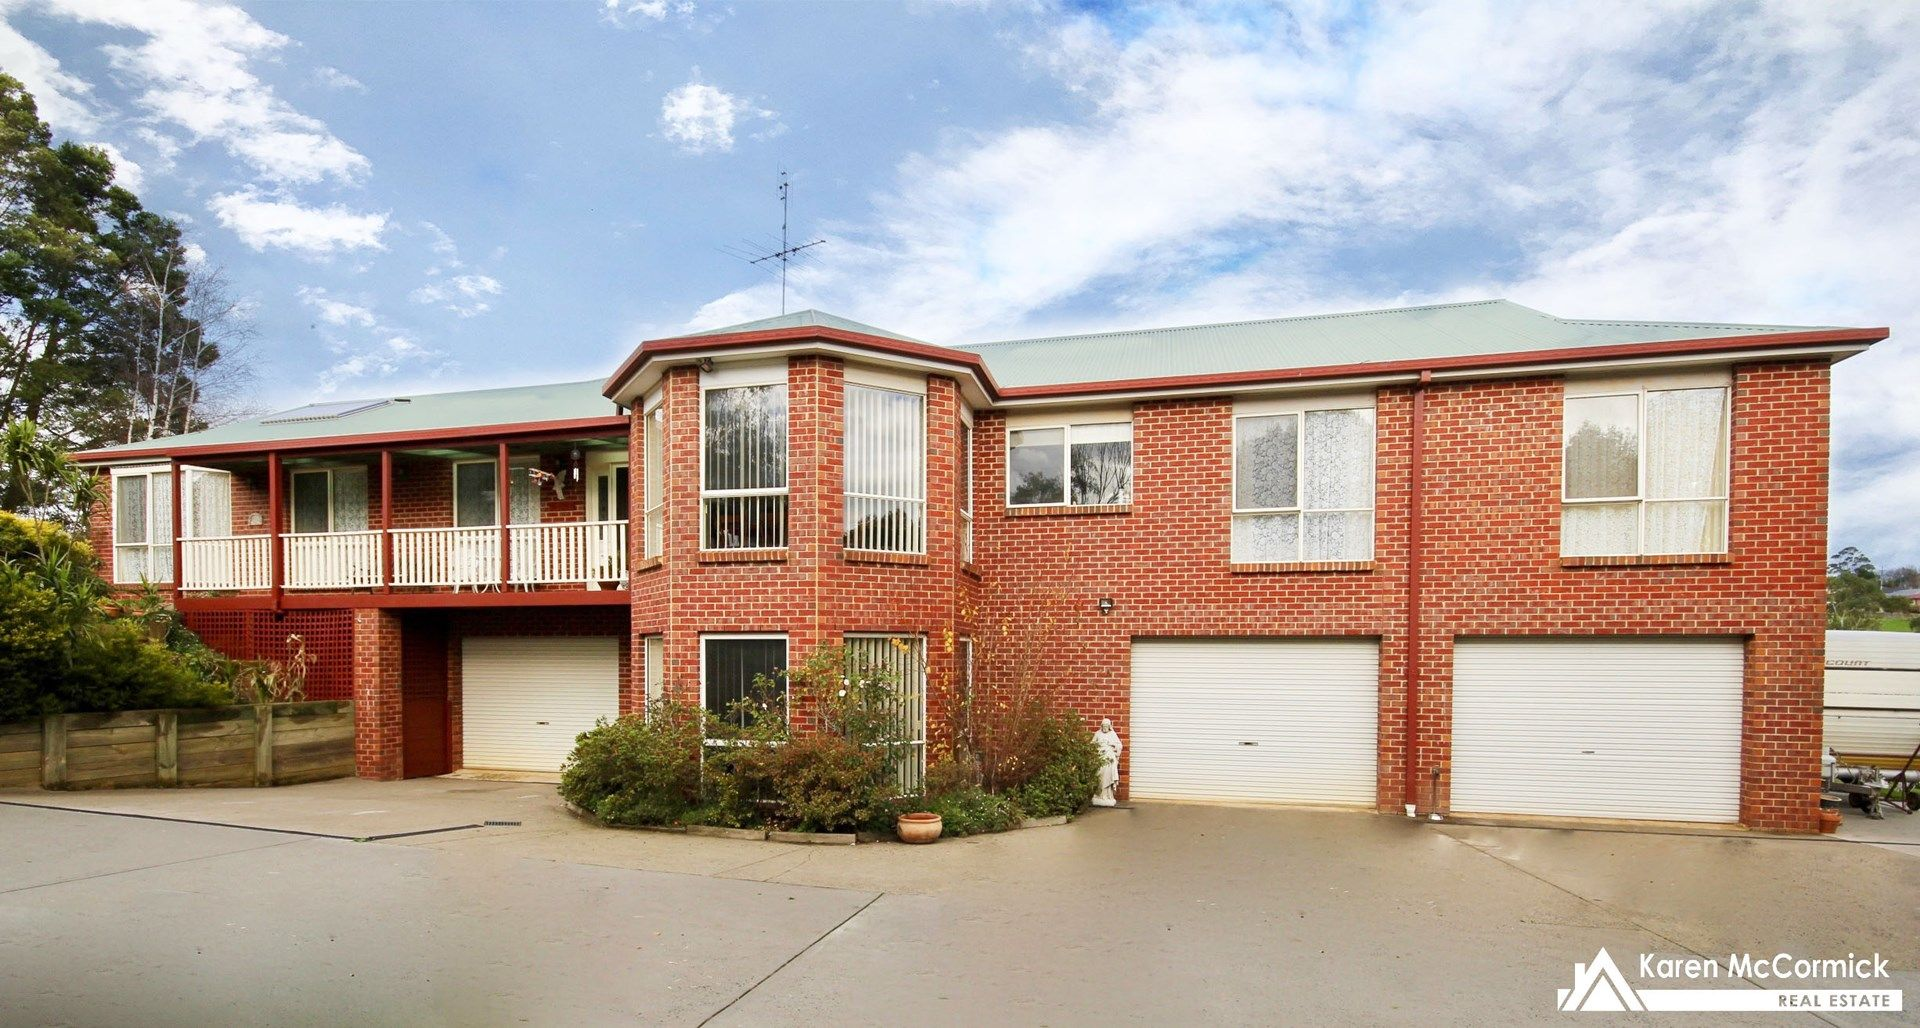 15 Cherrywood Place, Warragul VIC 3820, Image 0